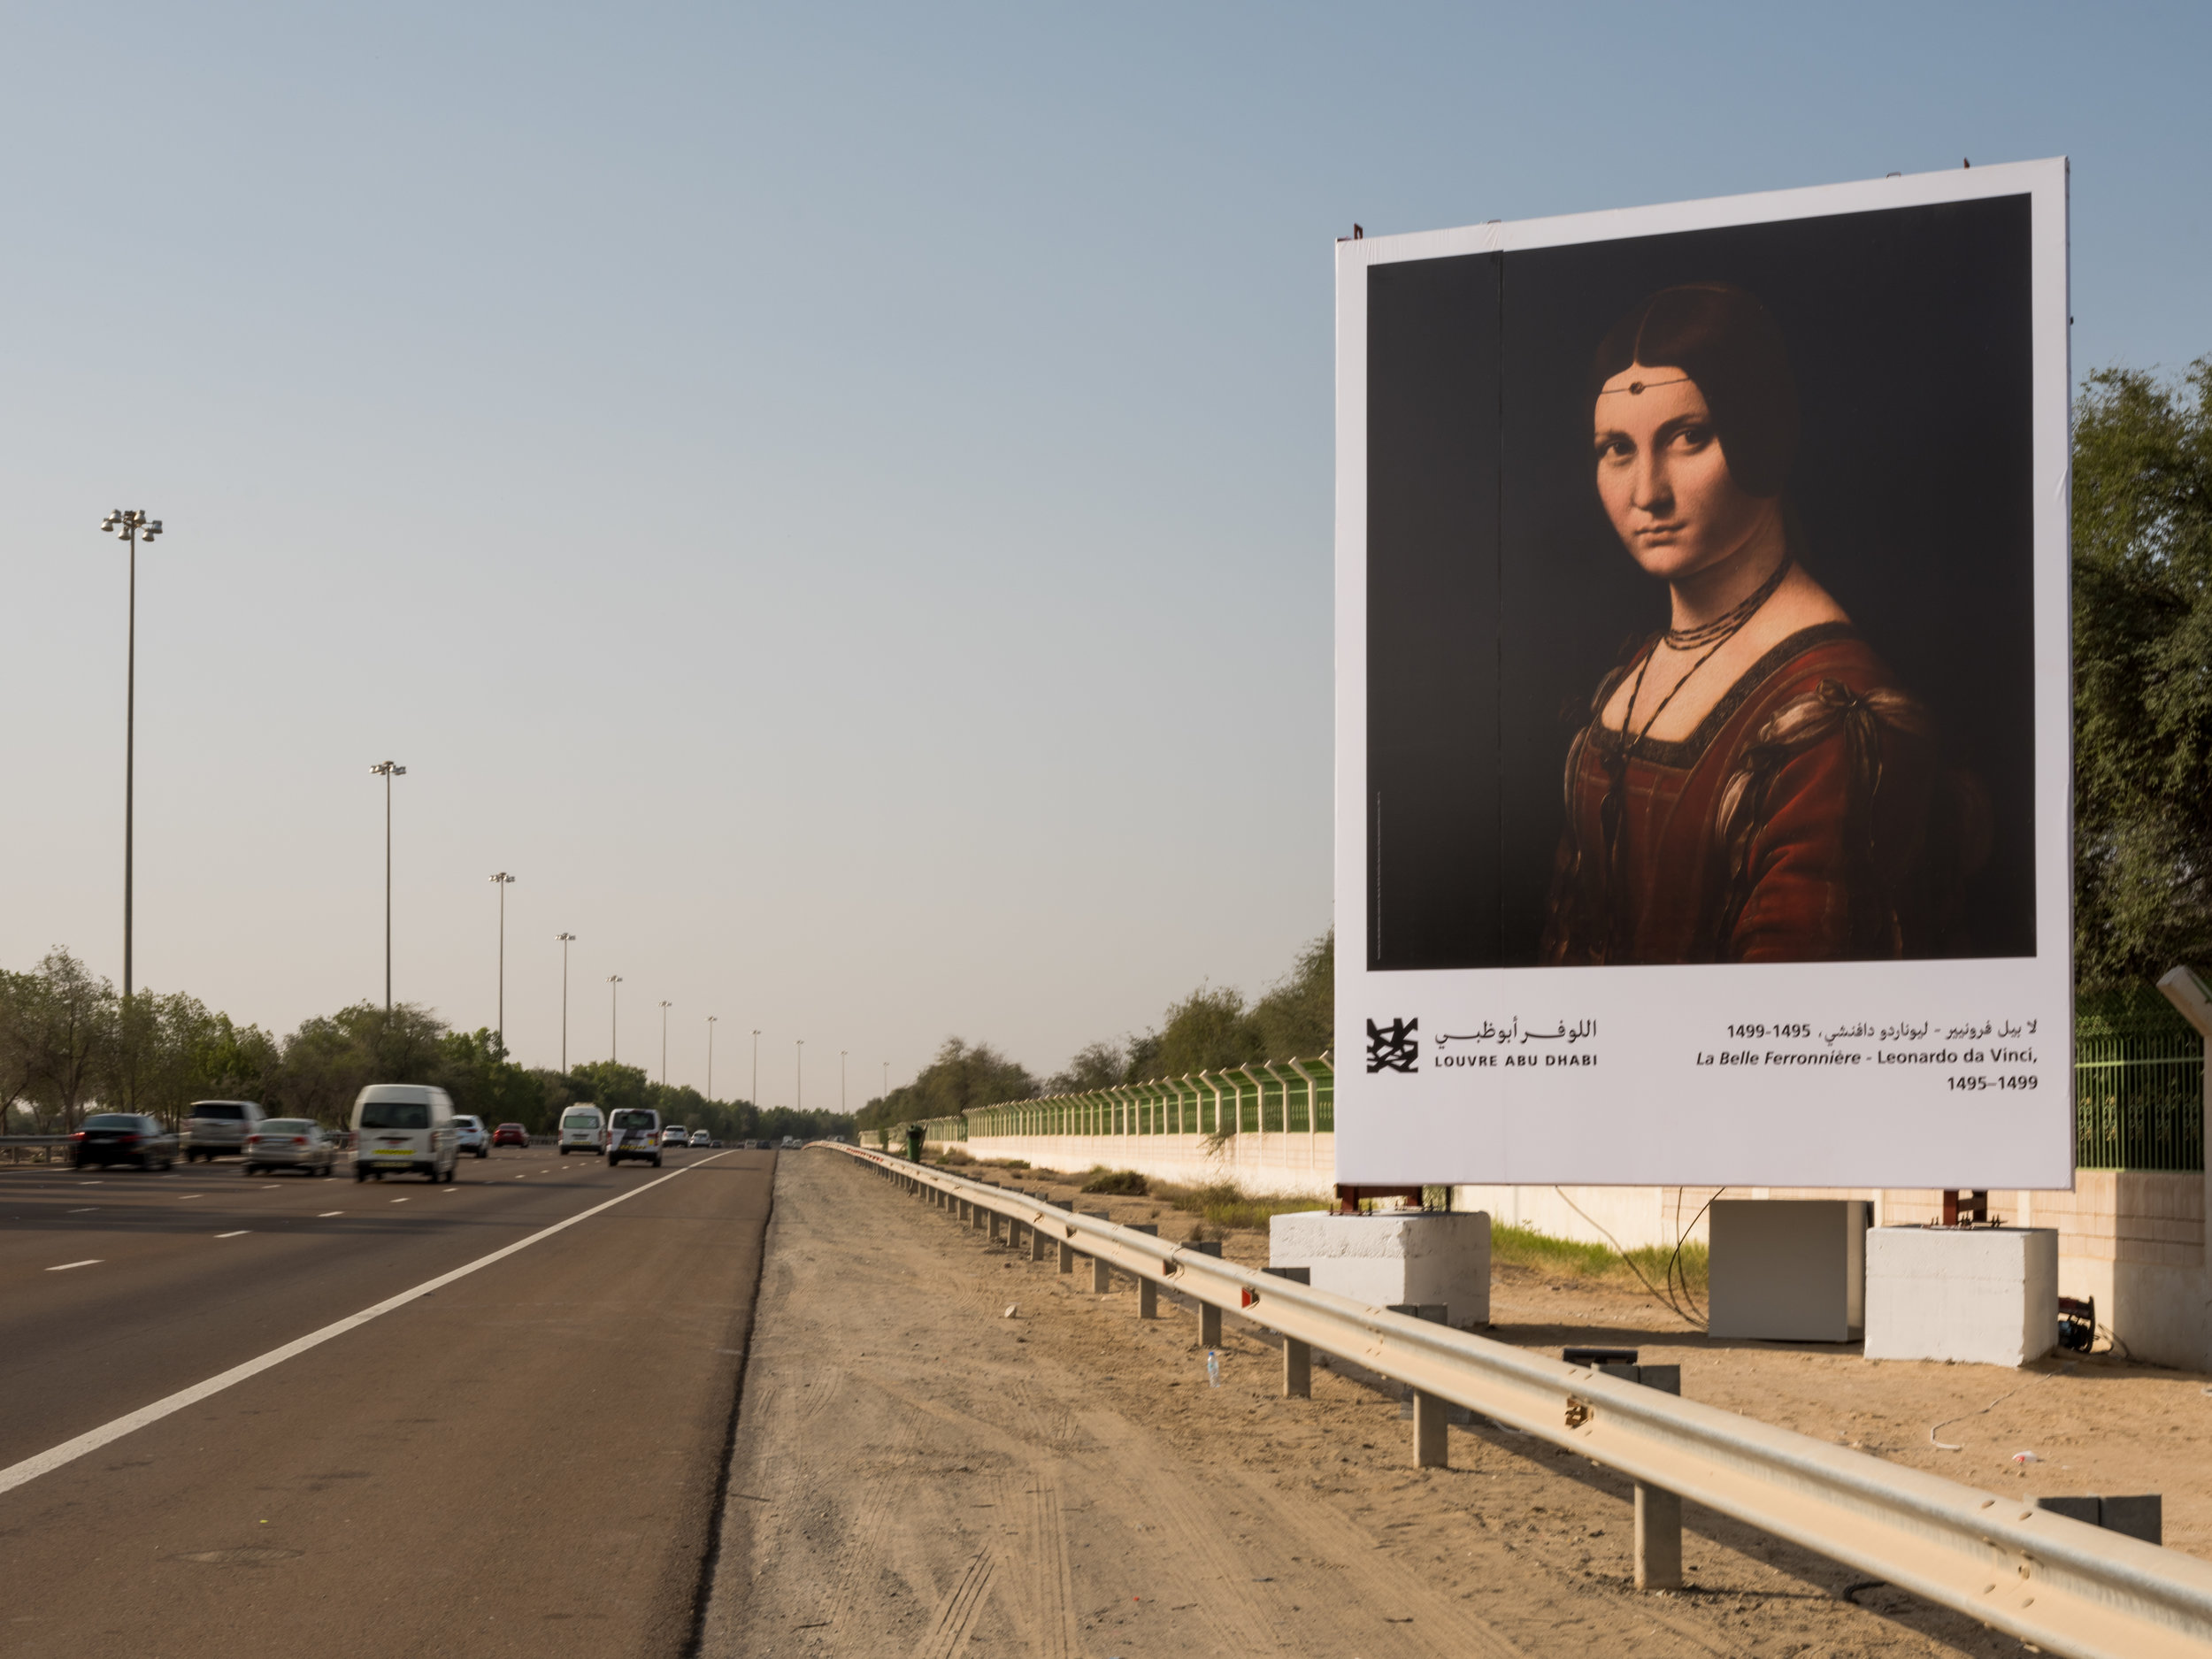 La Belle Ferroniere, Leonardo Da Vinci's masterpiece that is currently hanging in the Louvre Abu Dhabi is one of 10 billboards that trigger a radio introduction to be played to motorists as they drive past. Image courtesy of Louvre Abu Dhabi